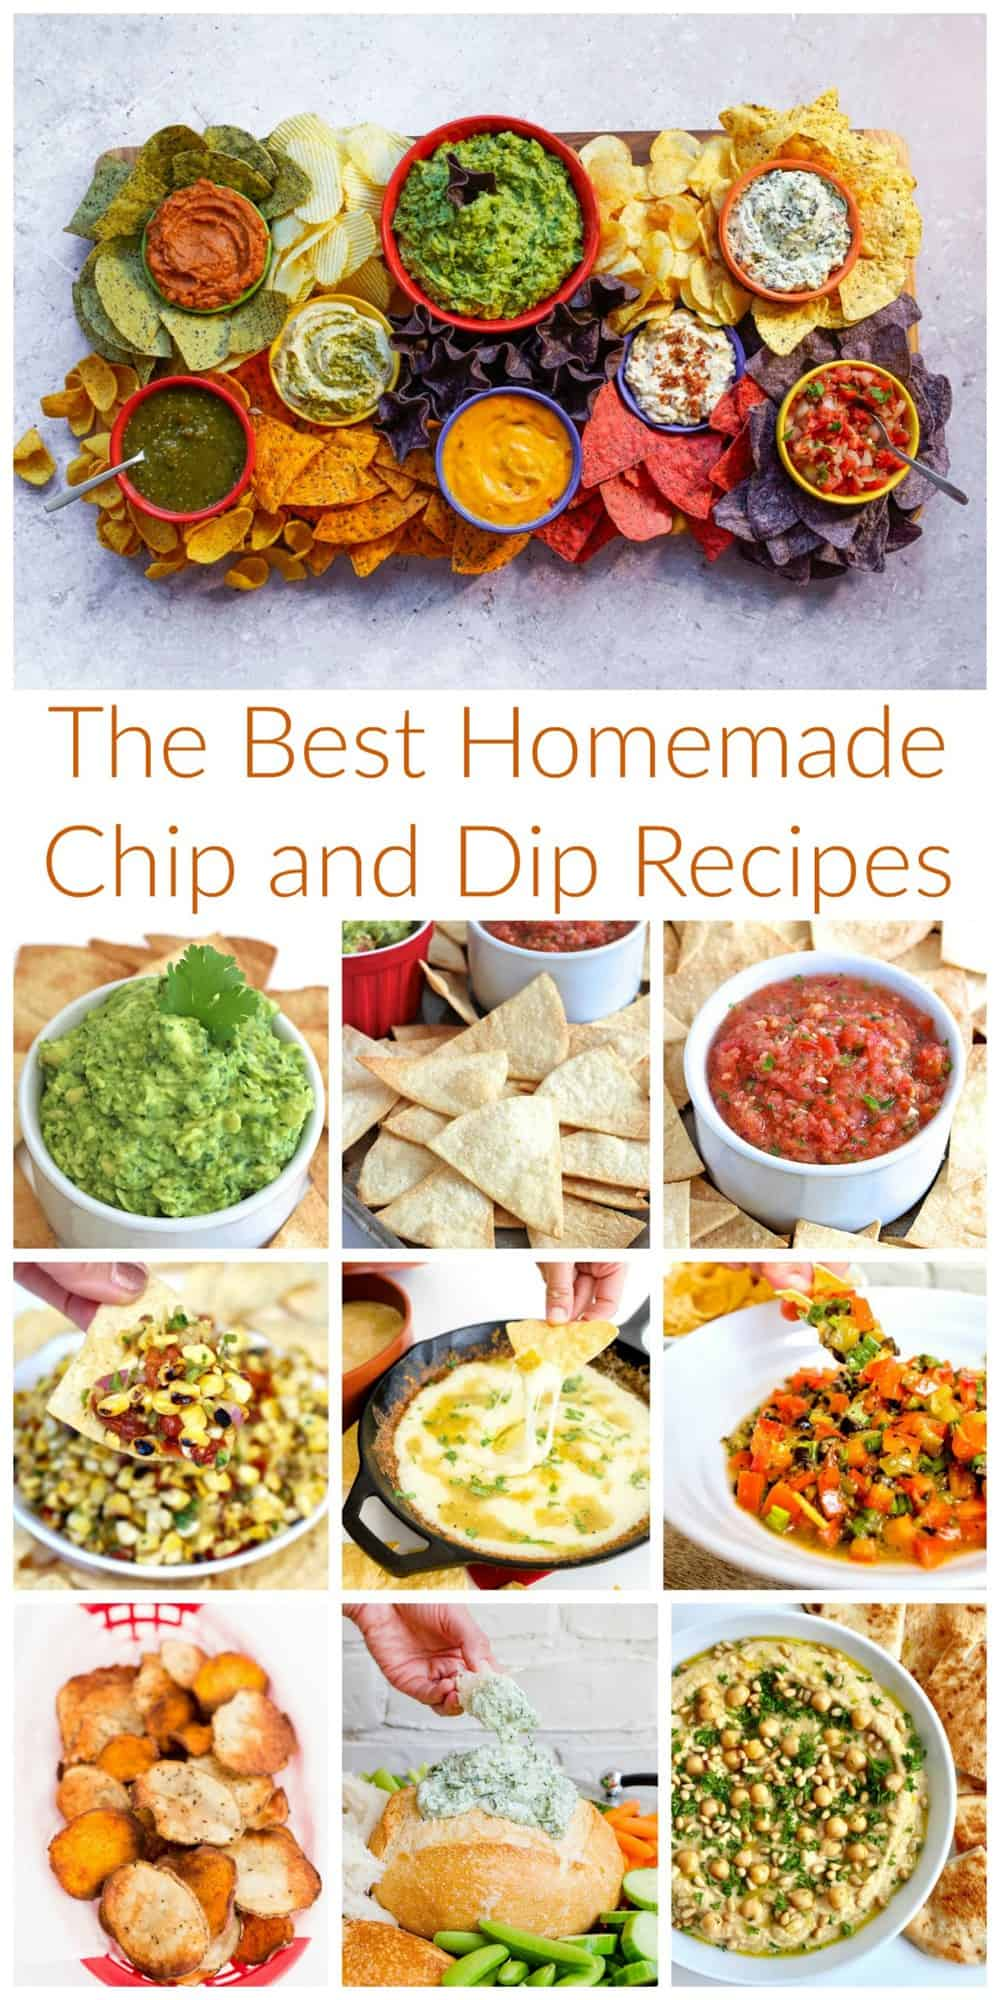 The Best Homemade Chip and Dip Recipes by The BakerMama